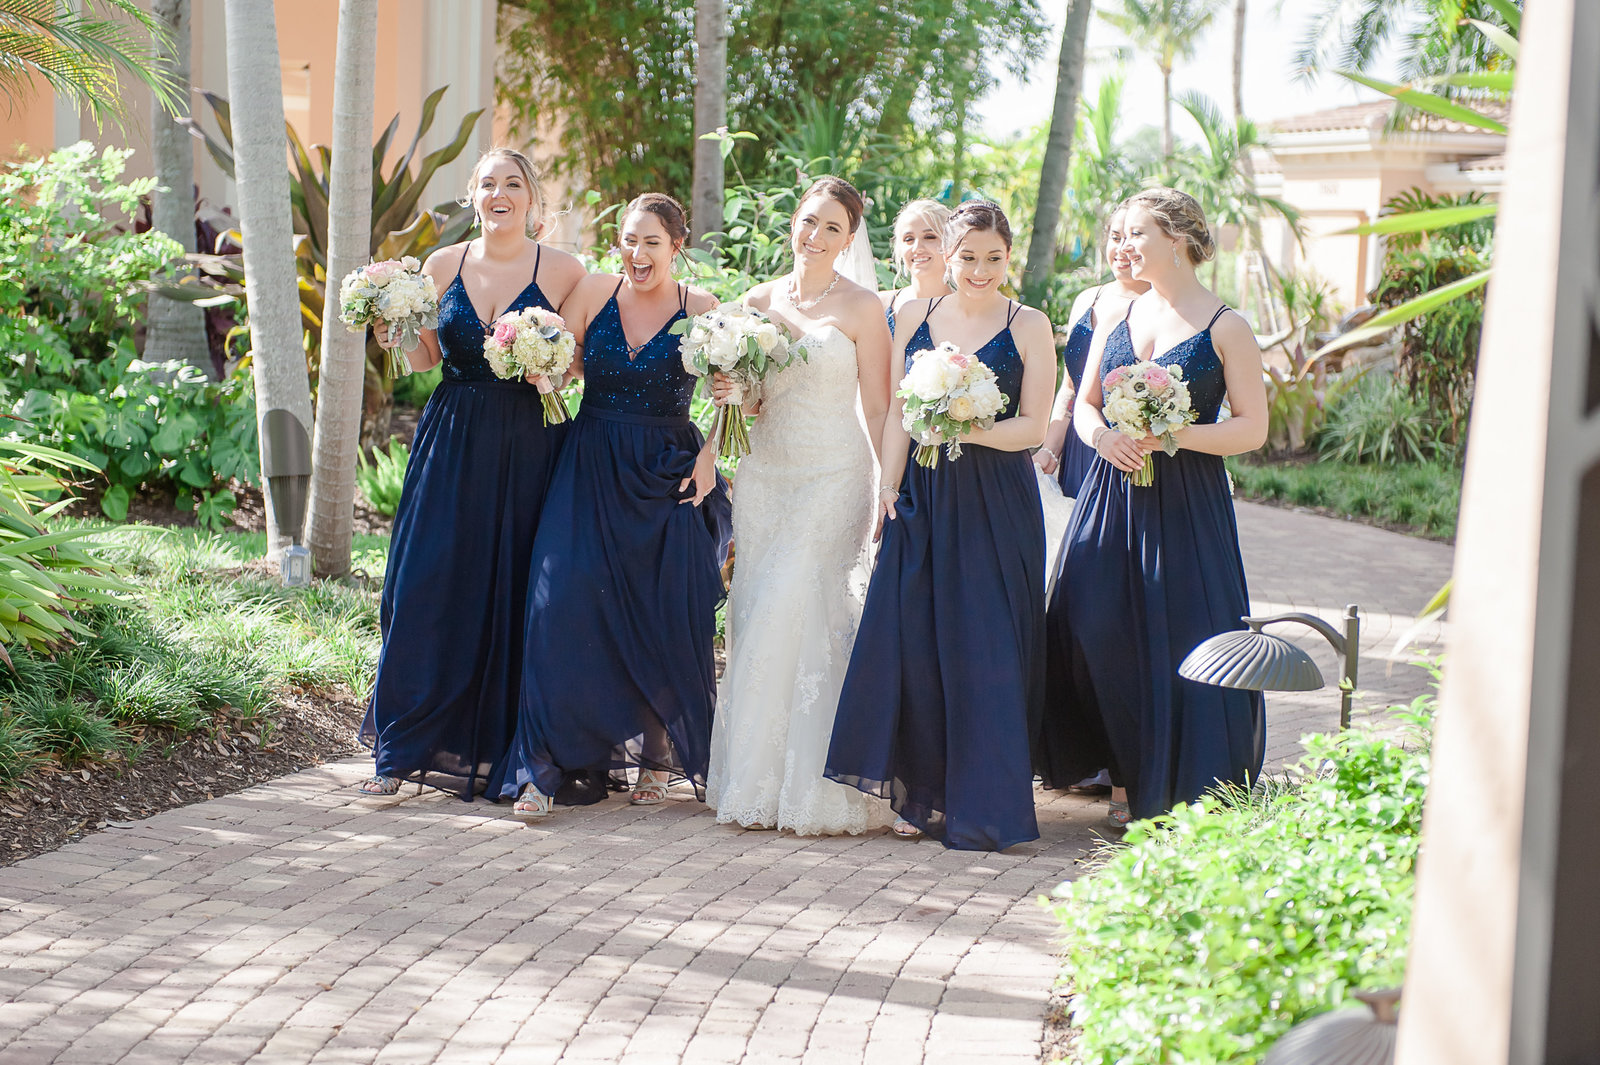 Bride and Bridesmaids - Country Club at Mirasol Wedding - Palm Beach Wedding Photography by Palm Beach Photography, Inc.